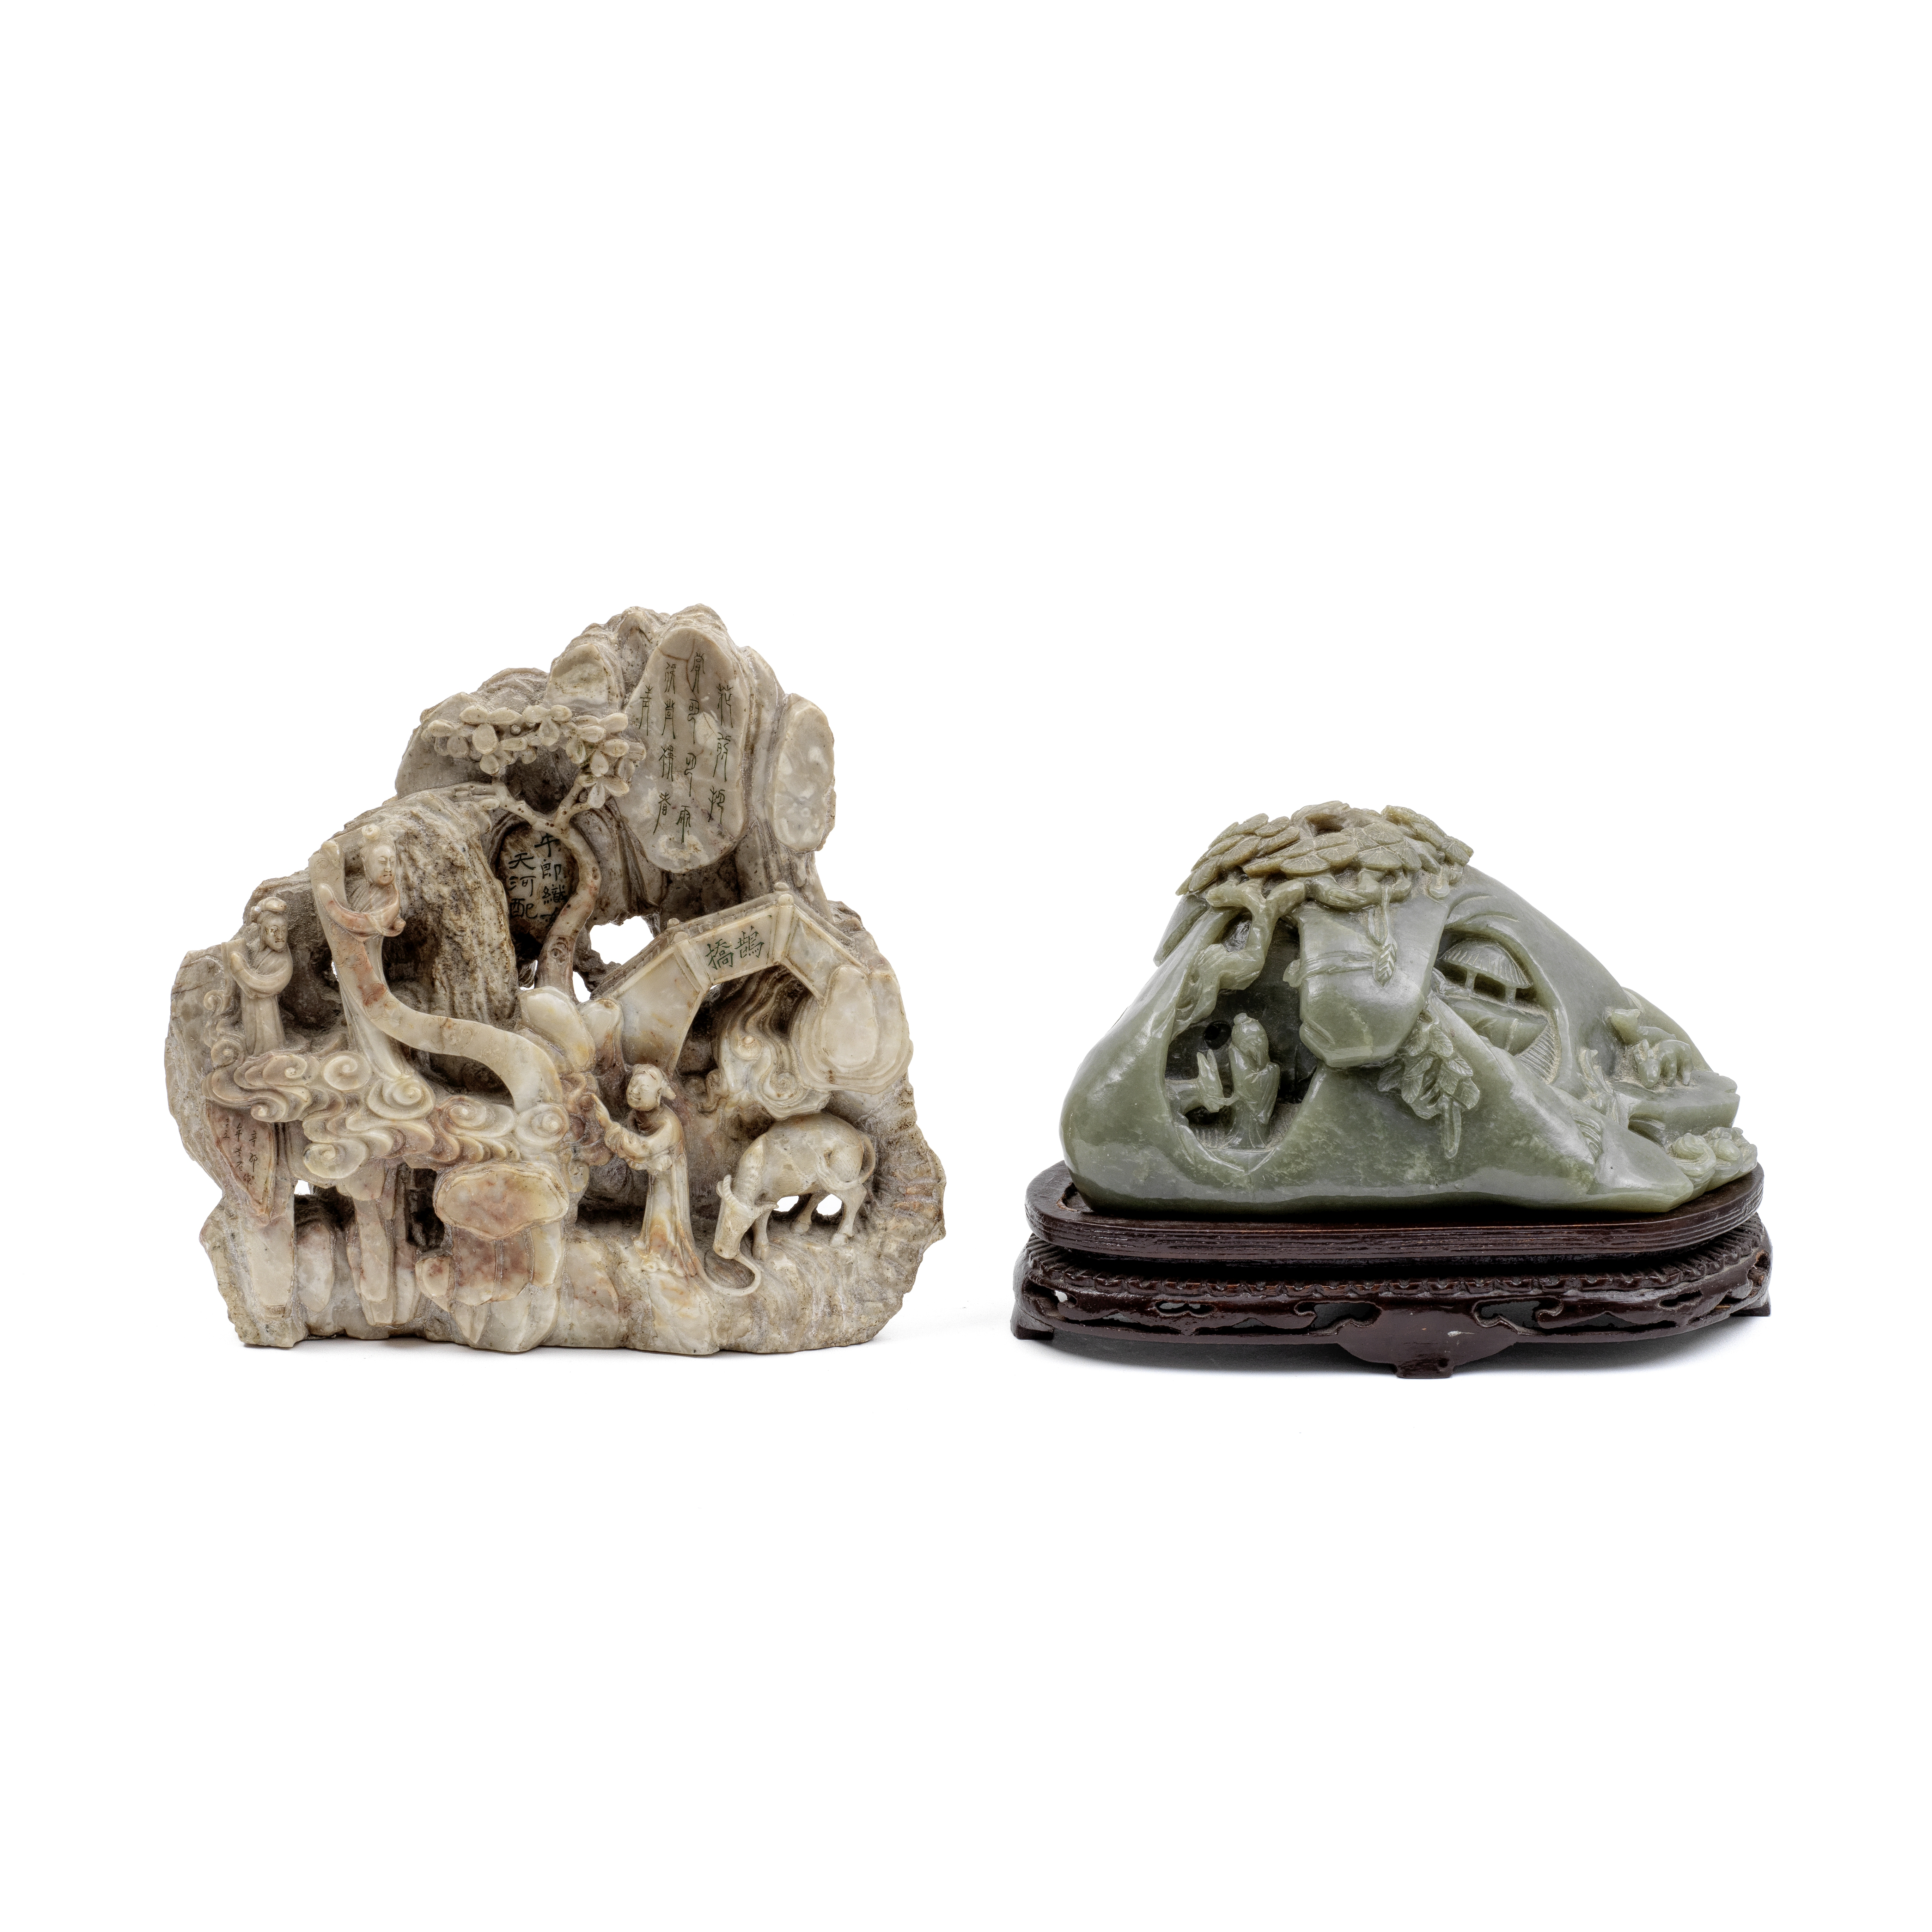 TWO LARGE BOULDER CARVINGS OF MOUNTAINS (3)